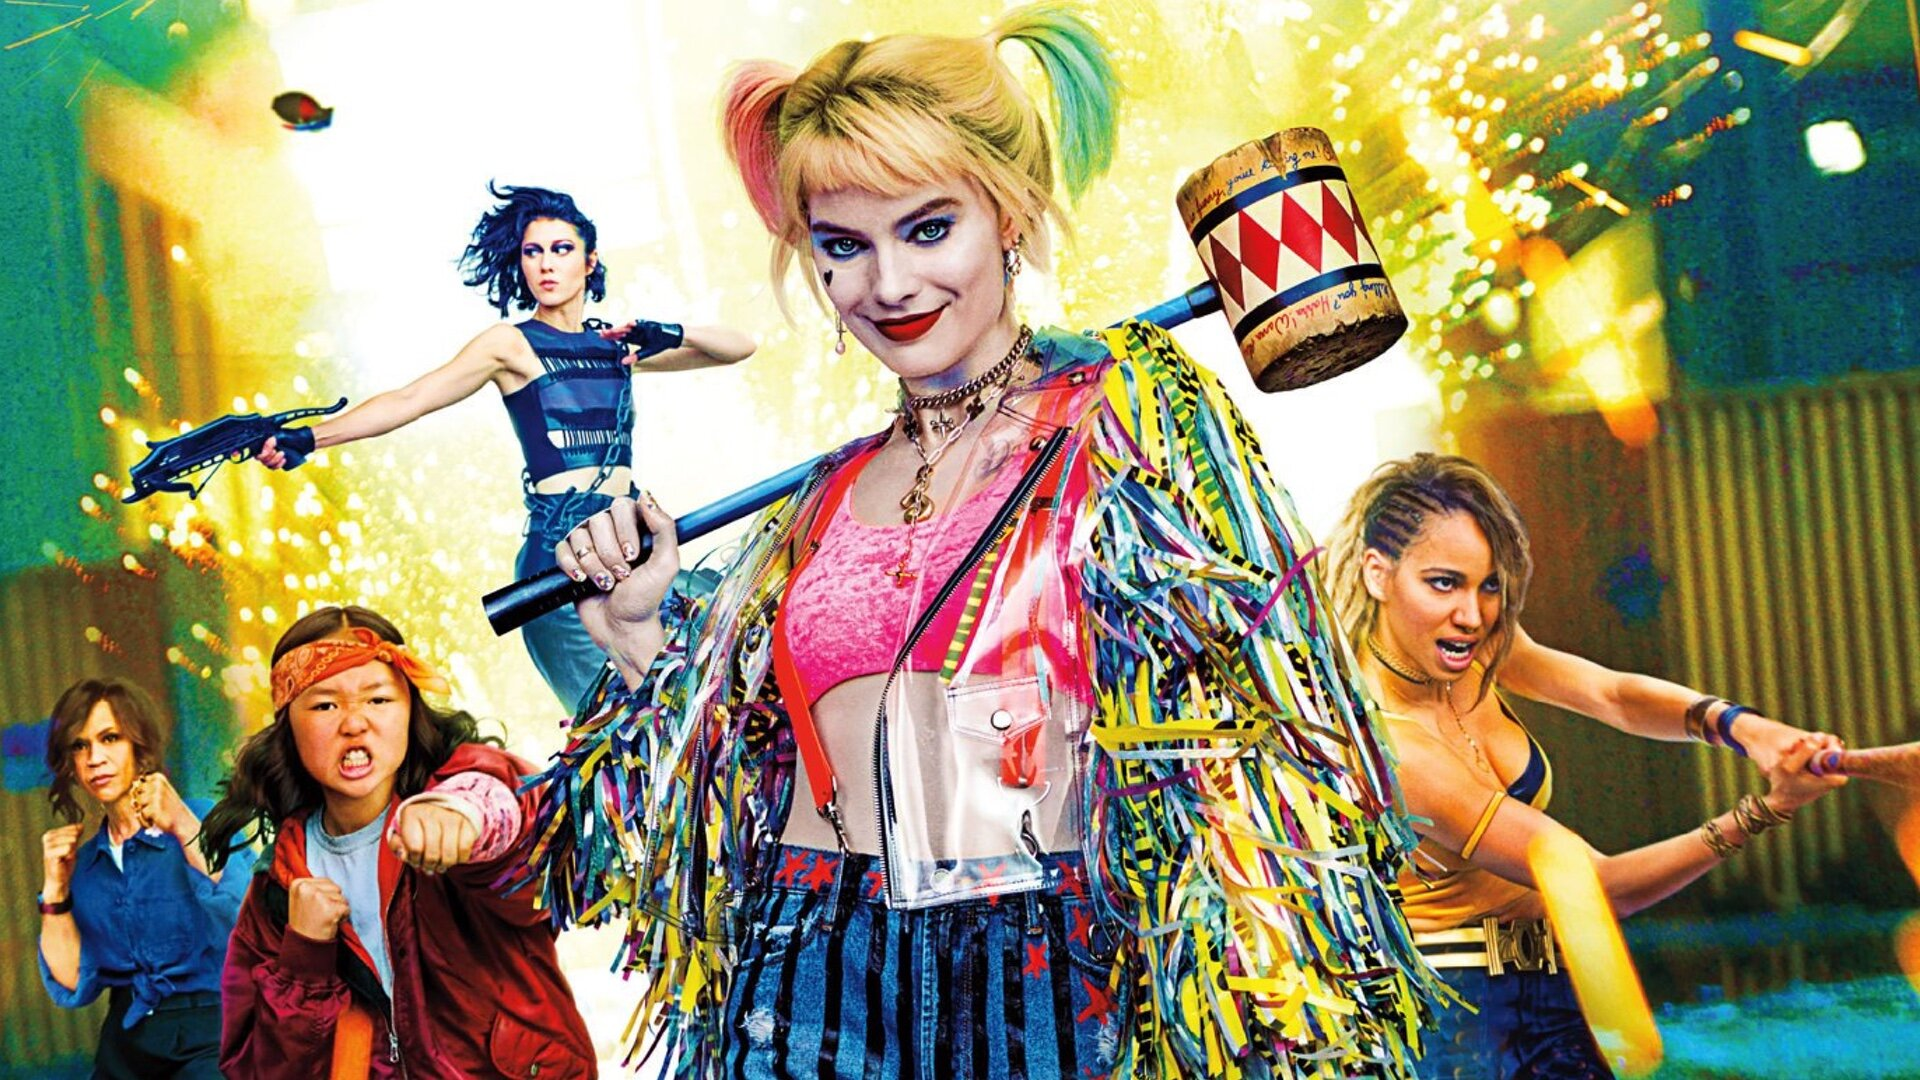 Halloween 2020 Review Embargo Birds of Prey' Review Embargo: When Are the First Reviews for the